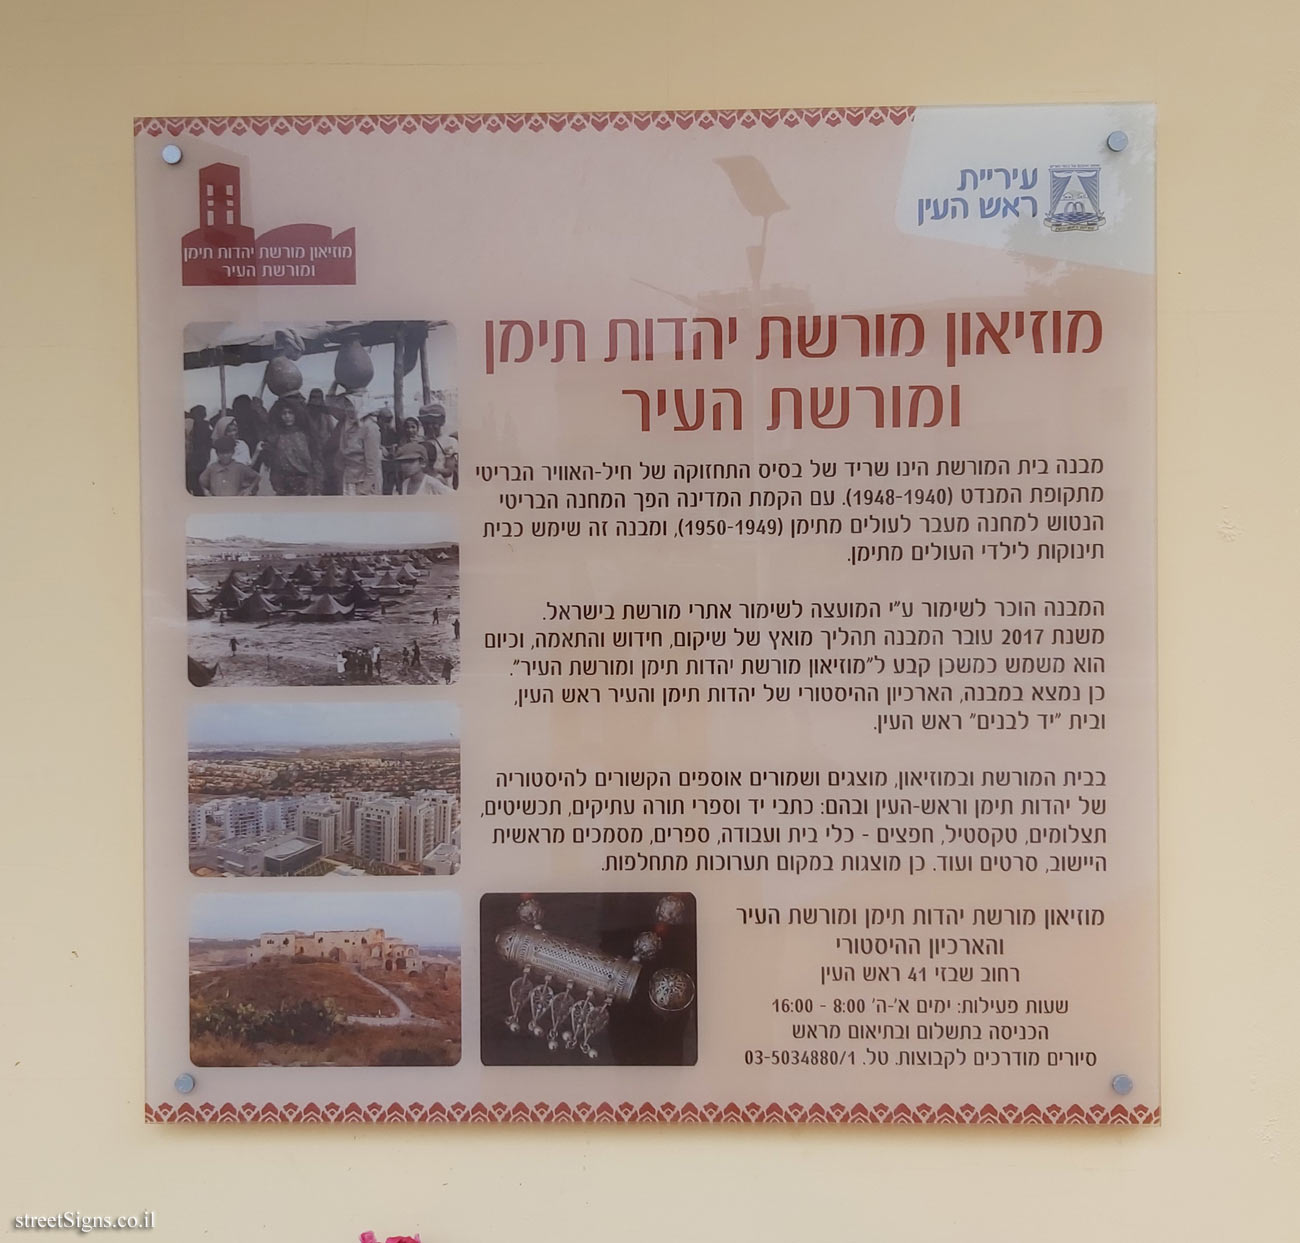 Rosh HaAyin - Museum of Yemenite Jewish Heritage and City Heritage